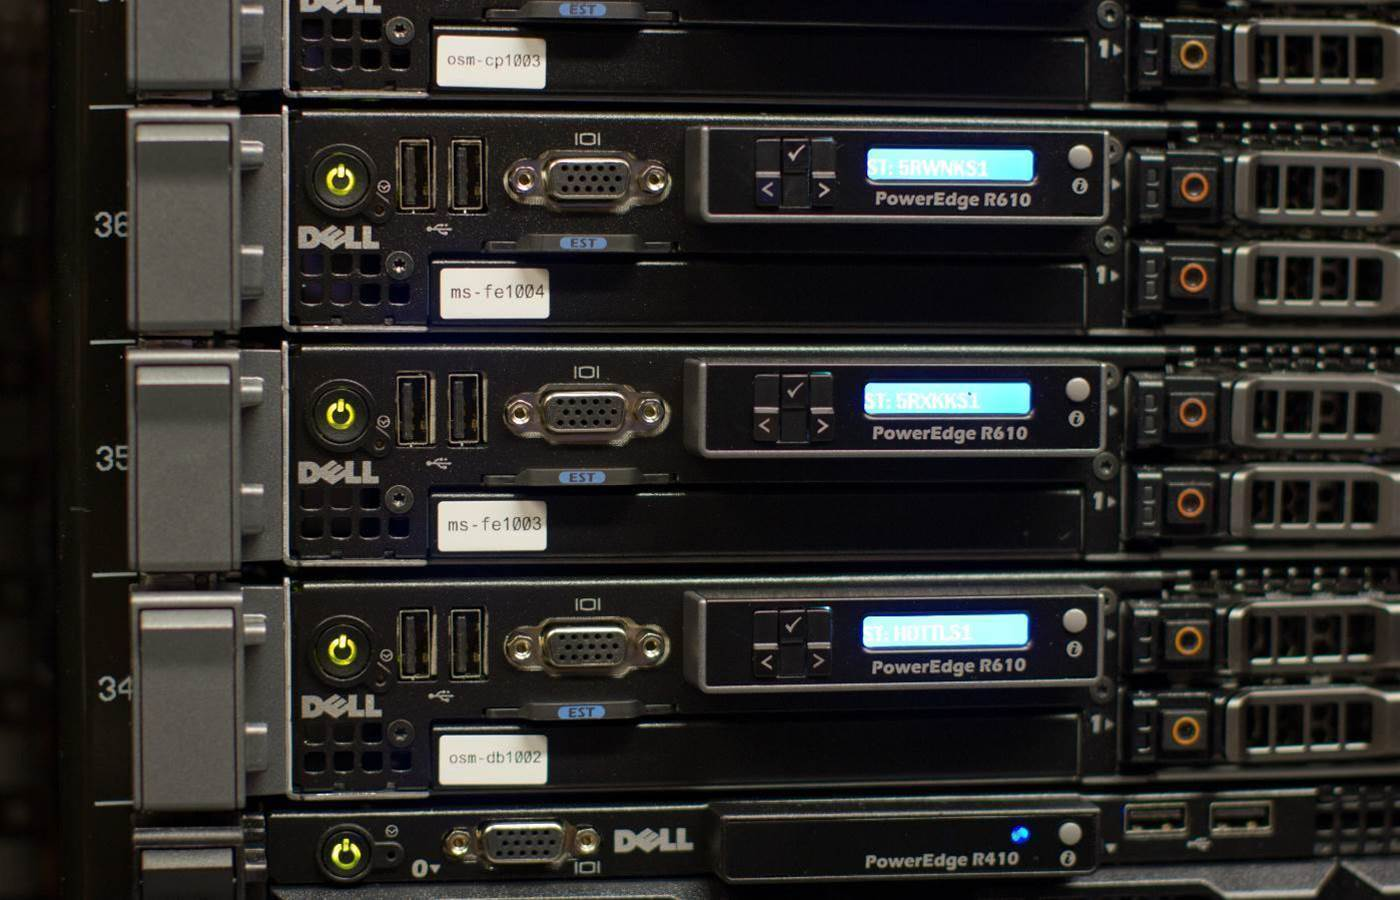 Dell unveils new PowerEdge servers